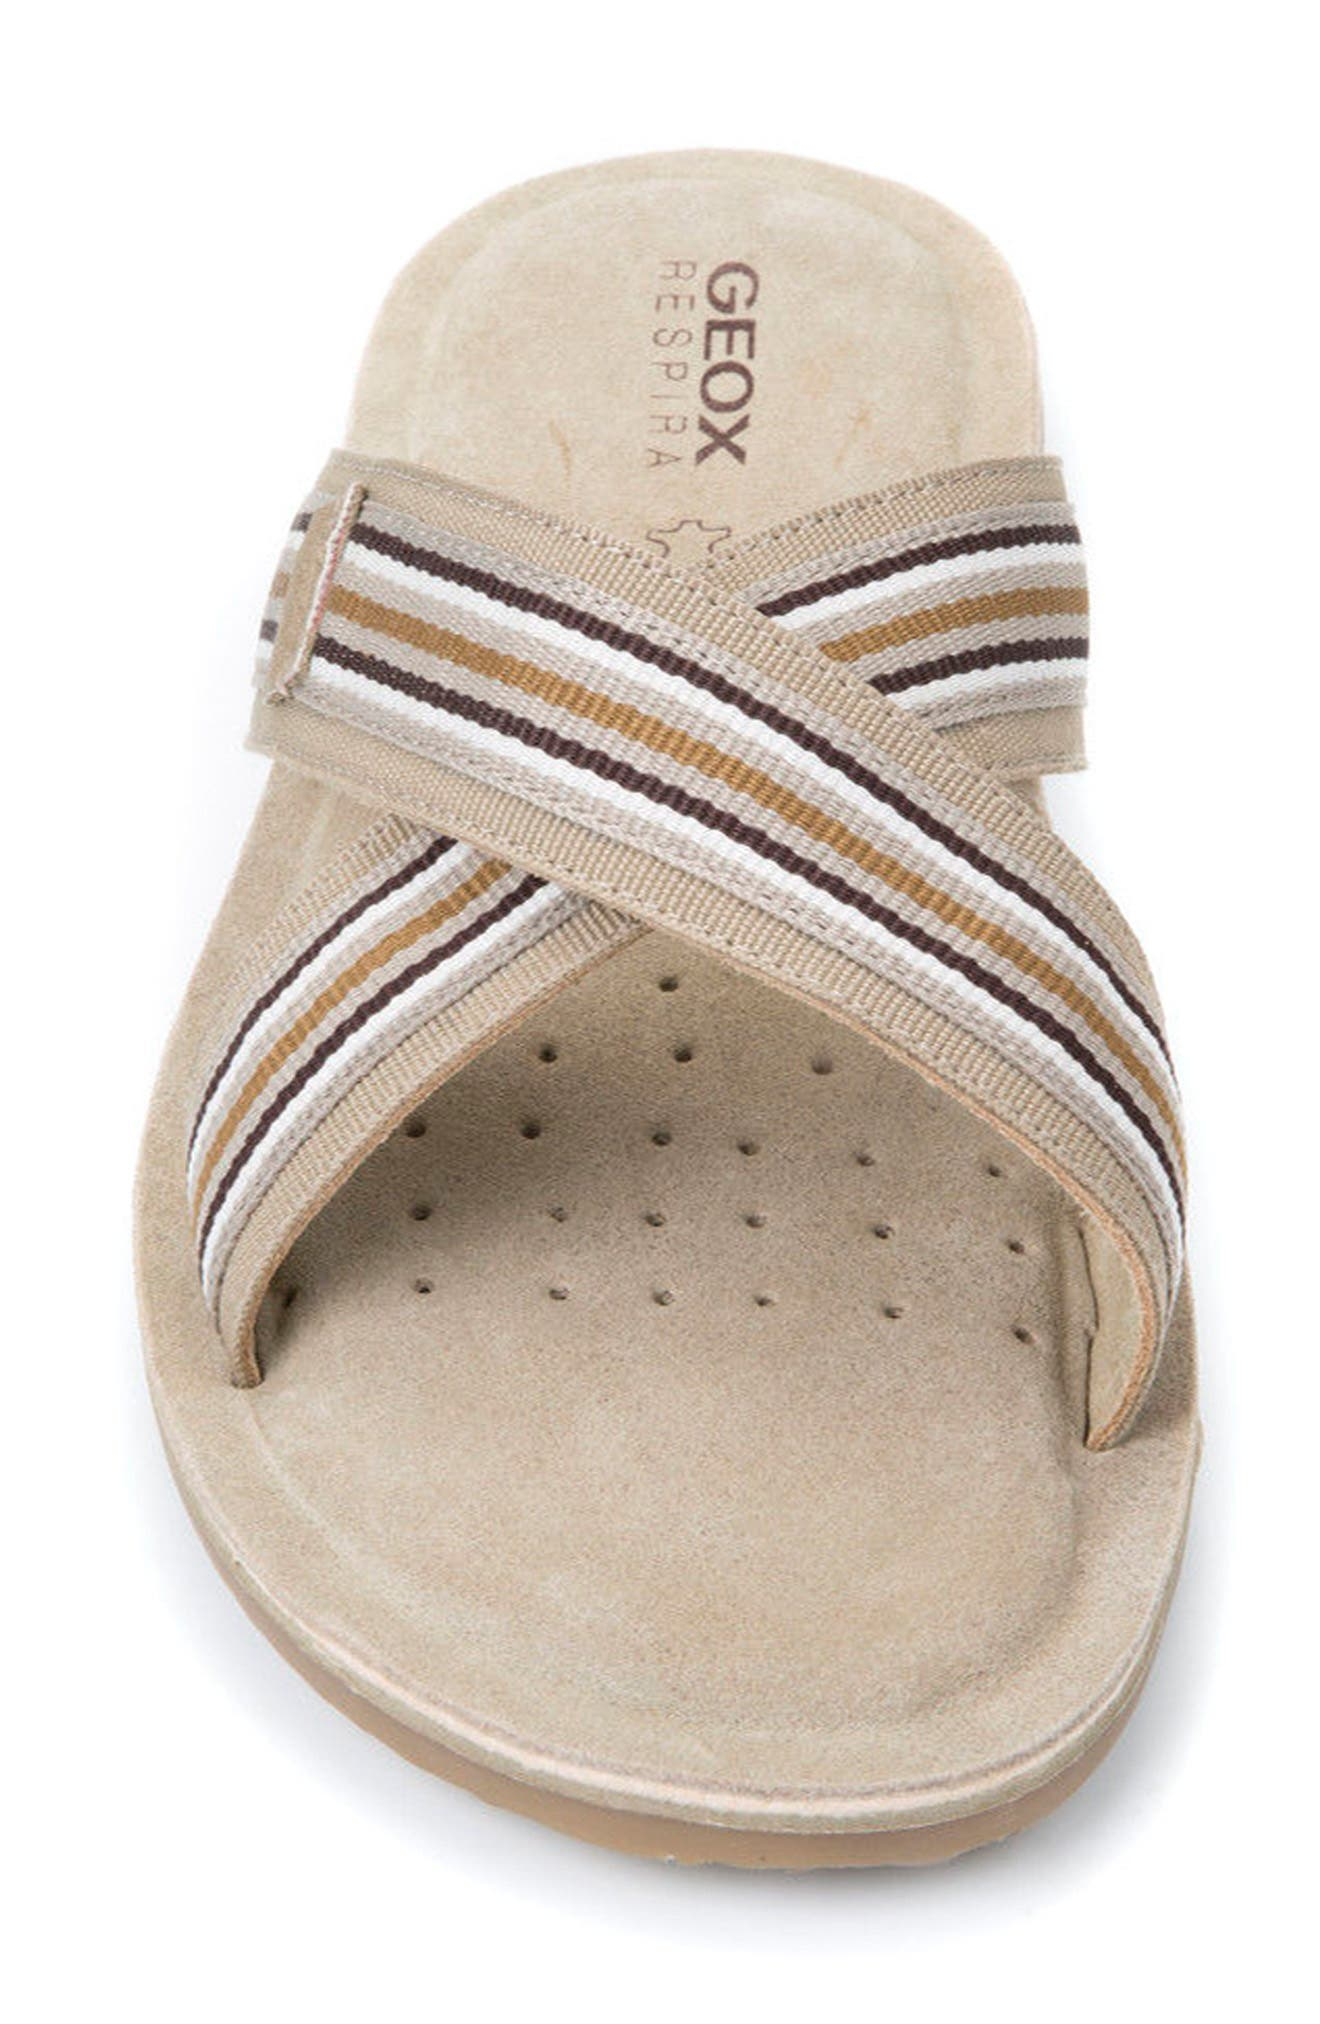 Artie 14 Cross Strap Slide Sandal,                             Alternate thumbnail 4, color,                             Sand